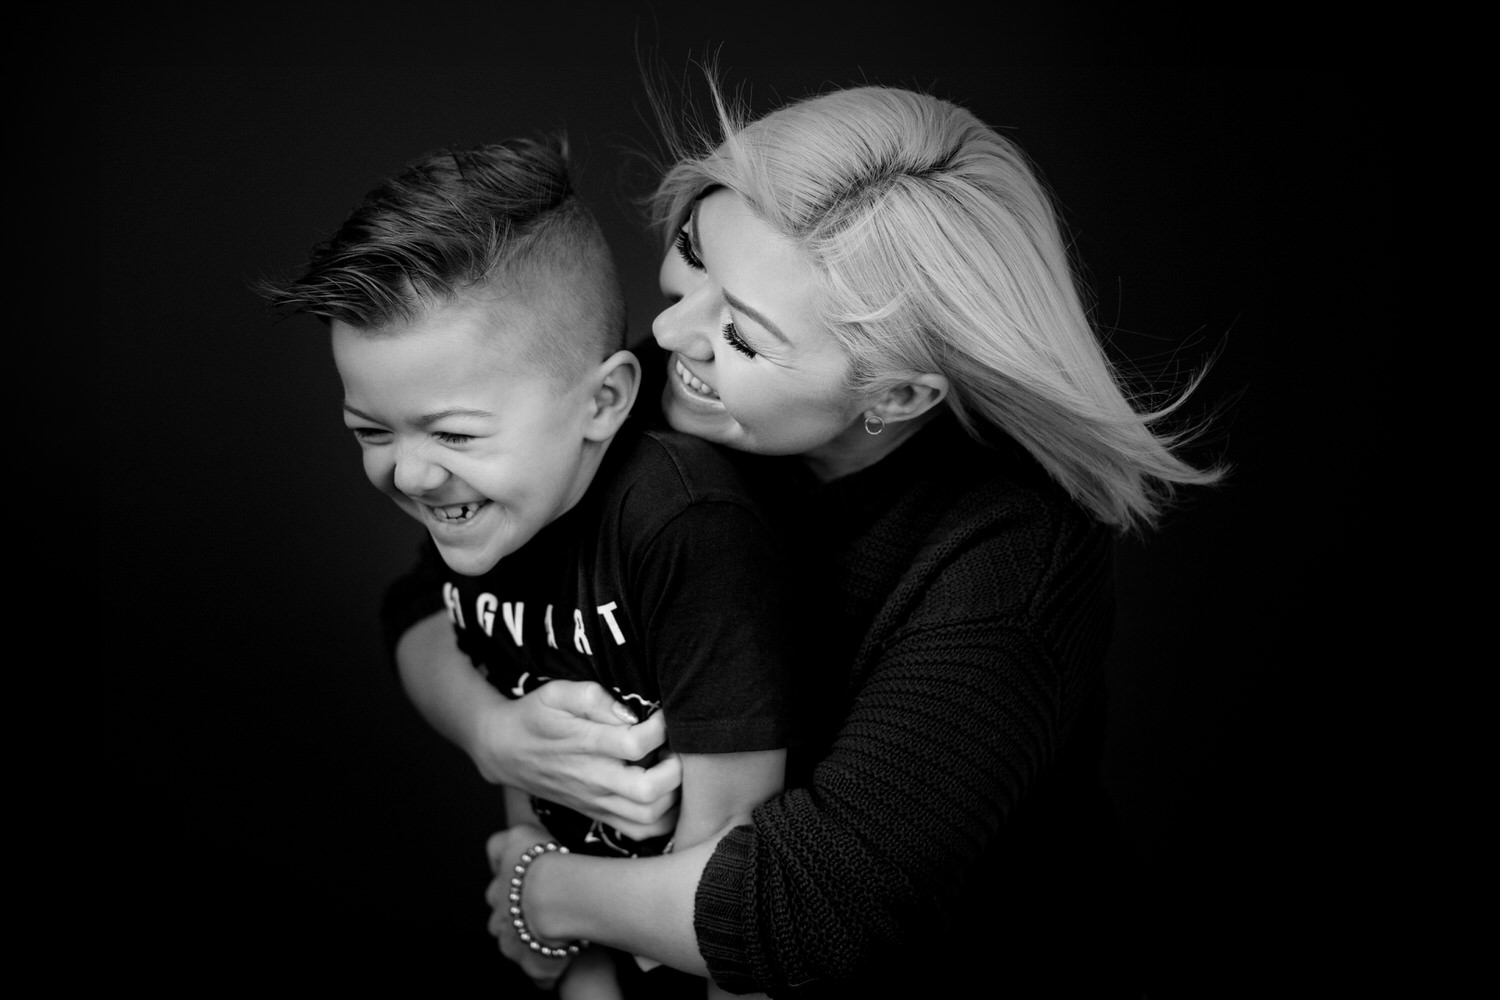 Mom hugging and tickling her son in OKES Portraits Studio in Calgary